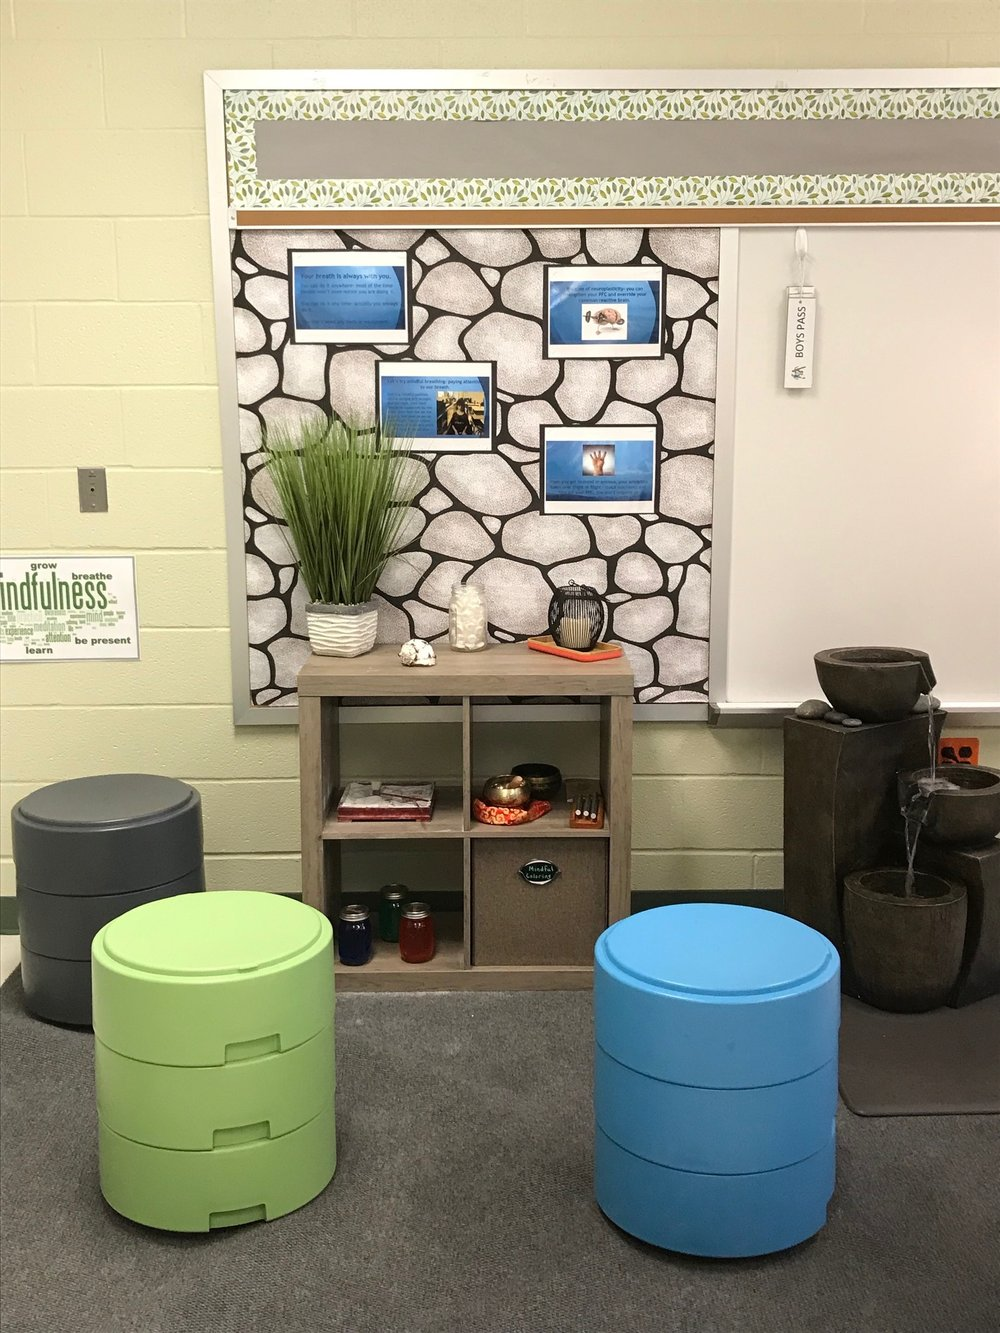 CCES, Mindfulness Room